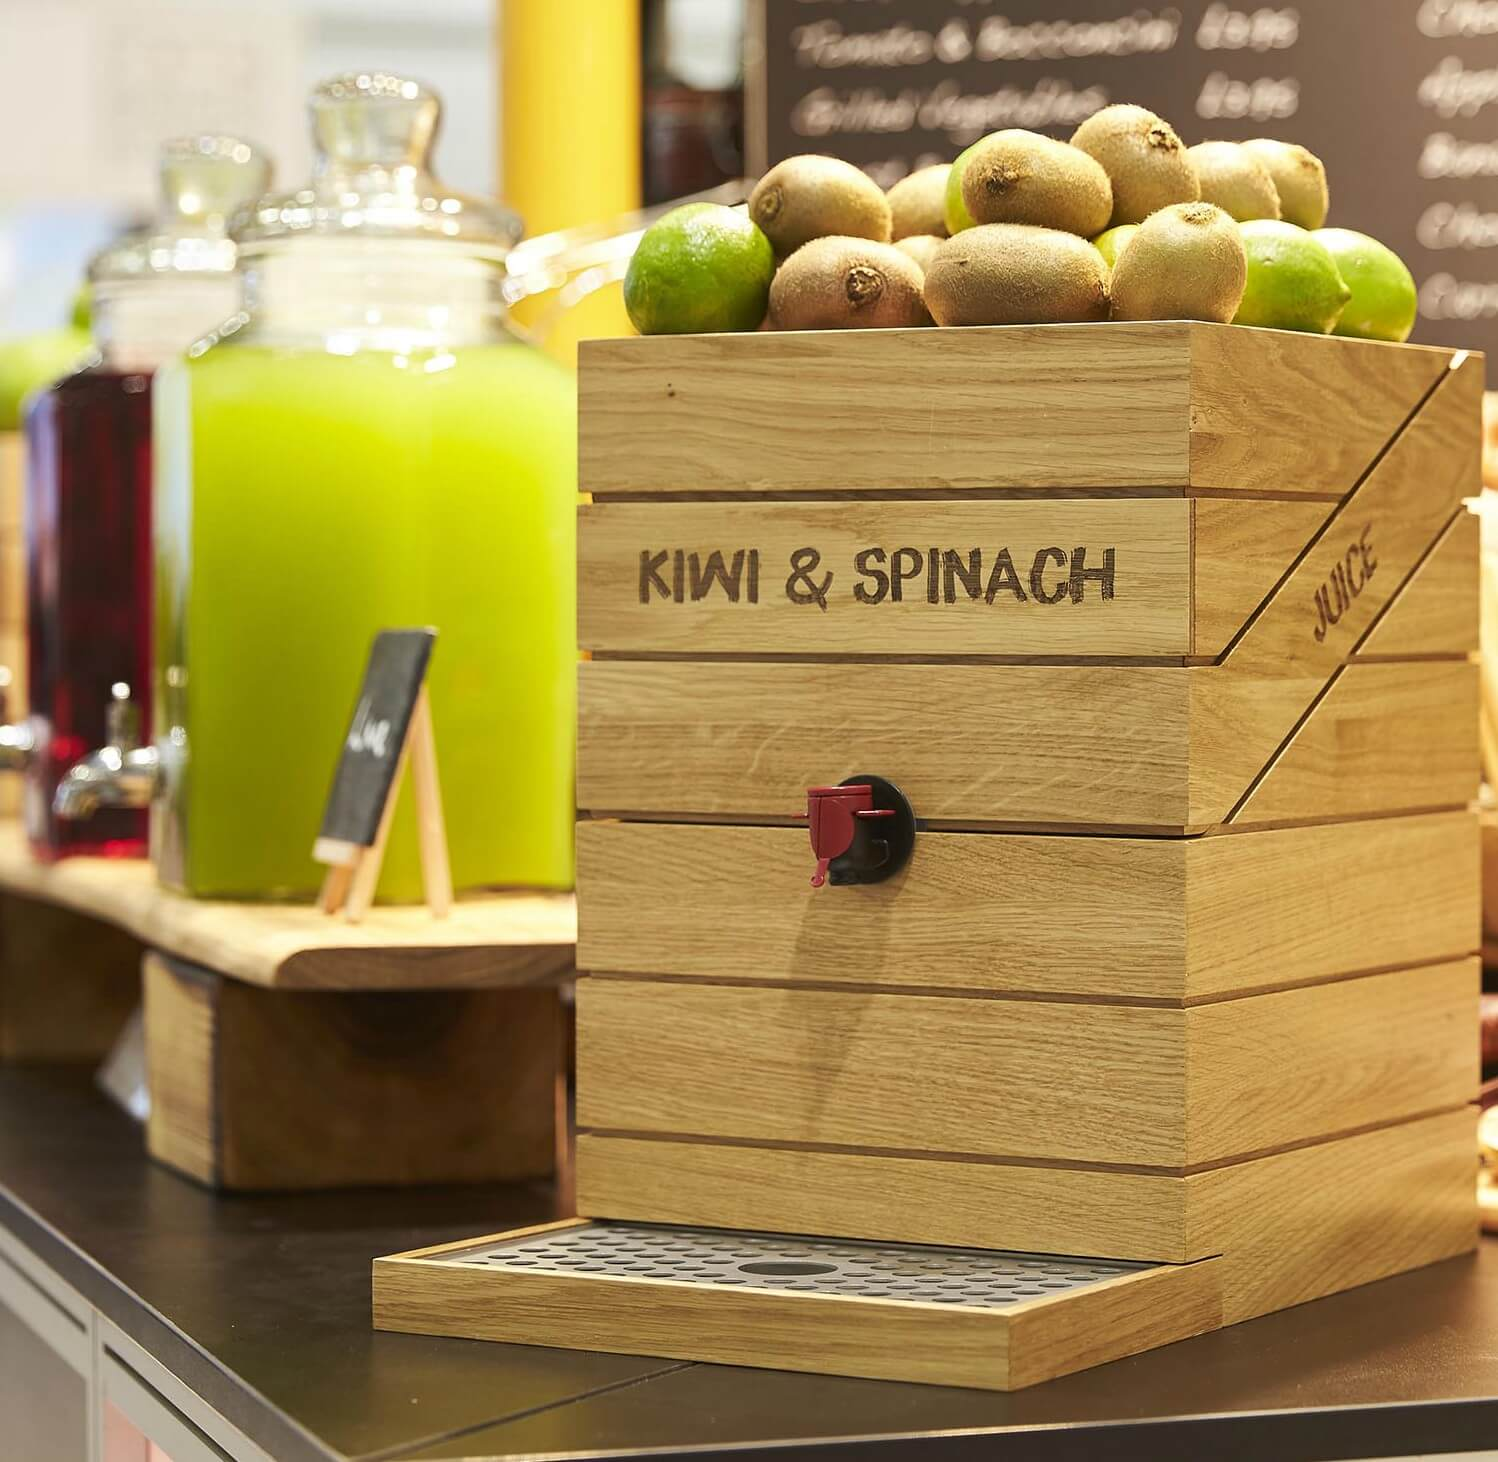 Juice Cube with Kiwi and Spinach Smoothie